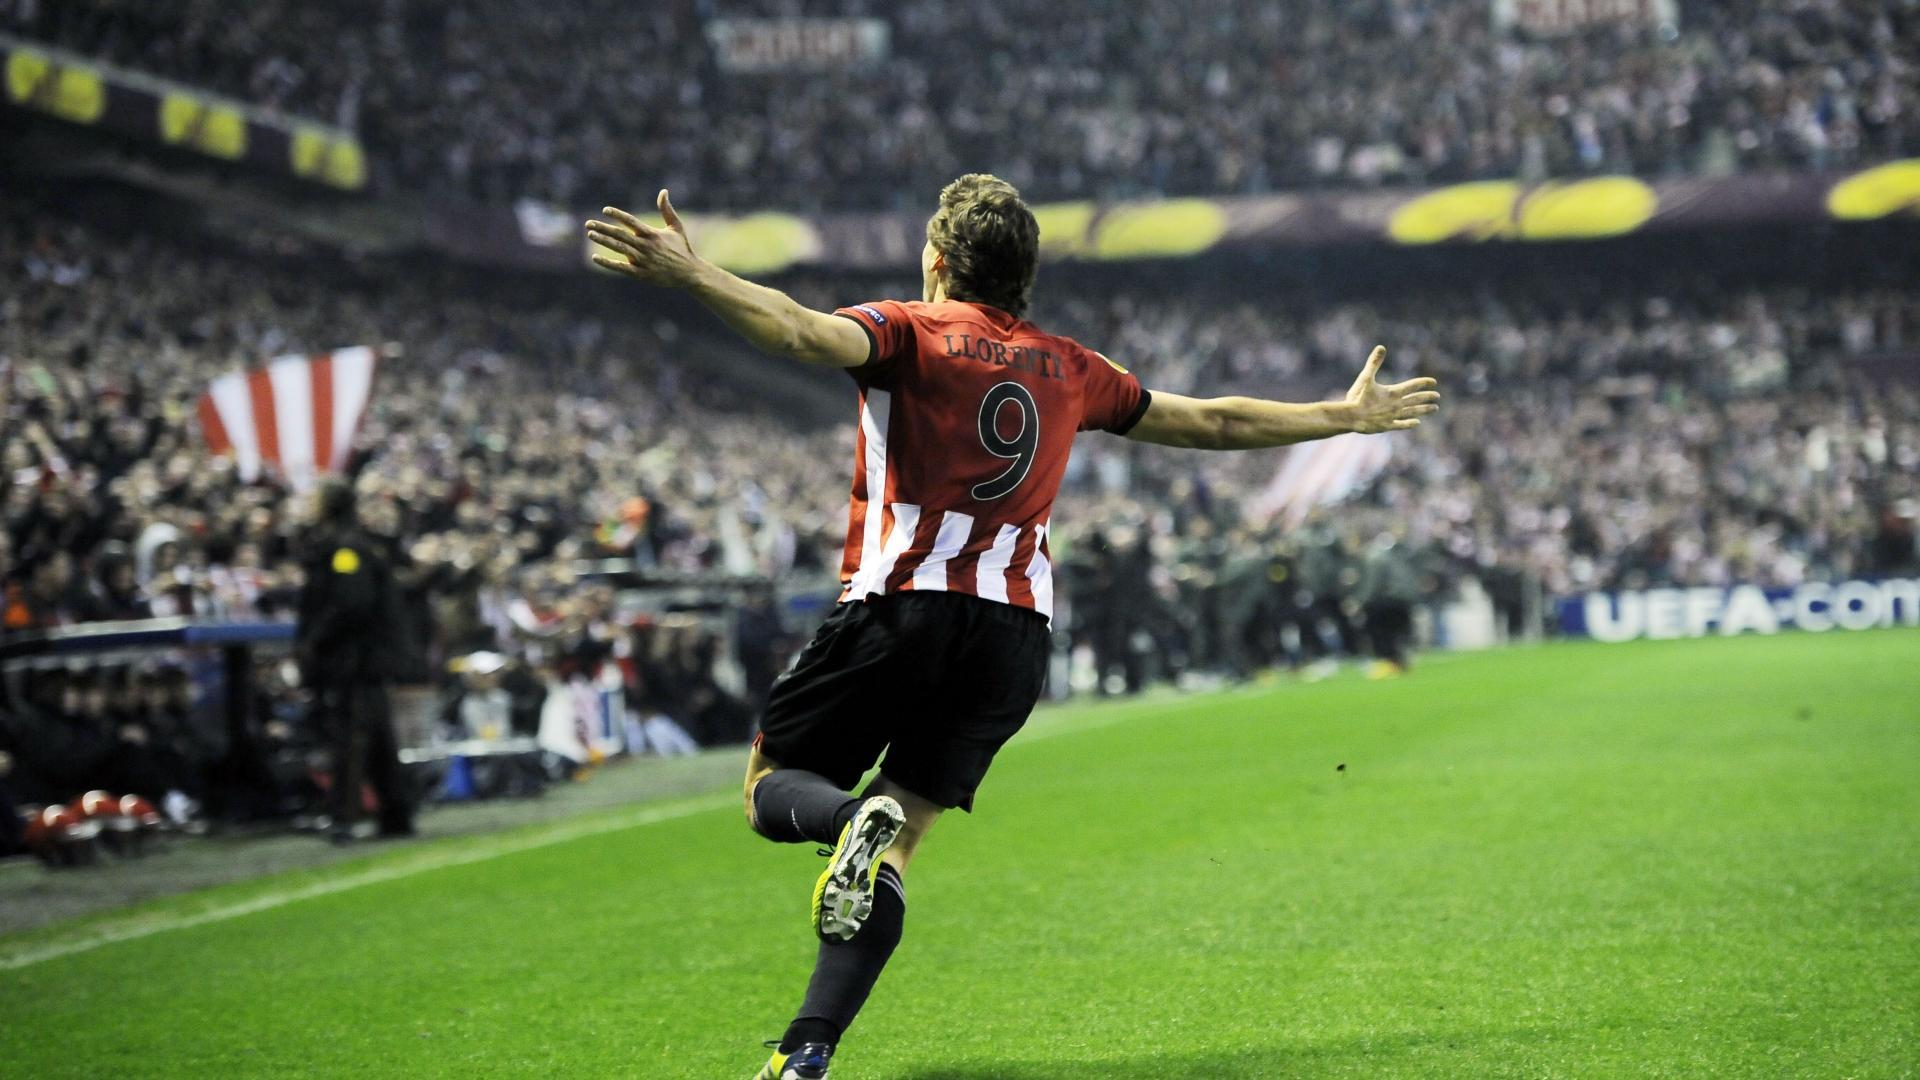 Athletic bilbao soccer united wallpapers